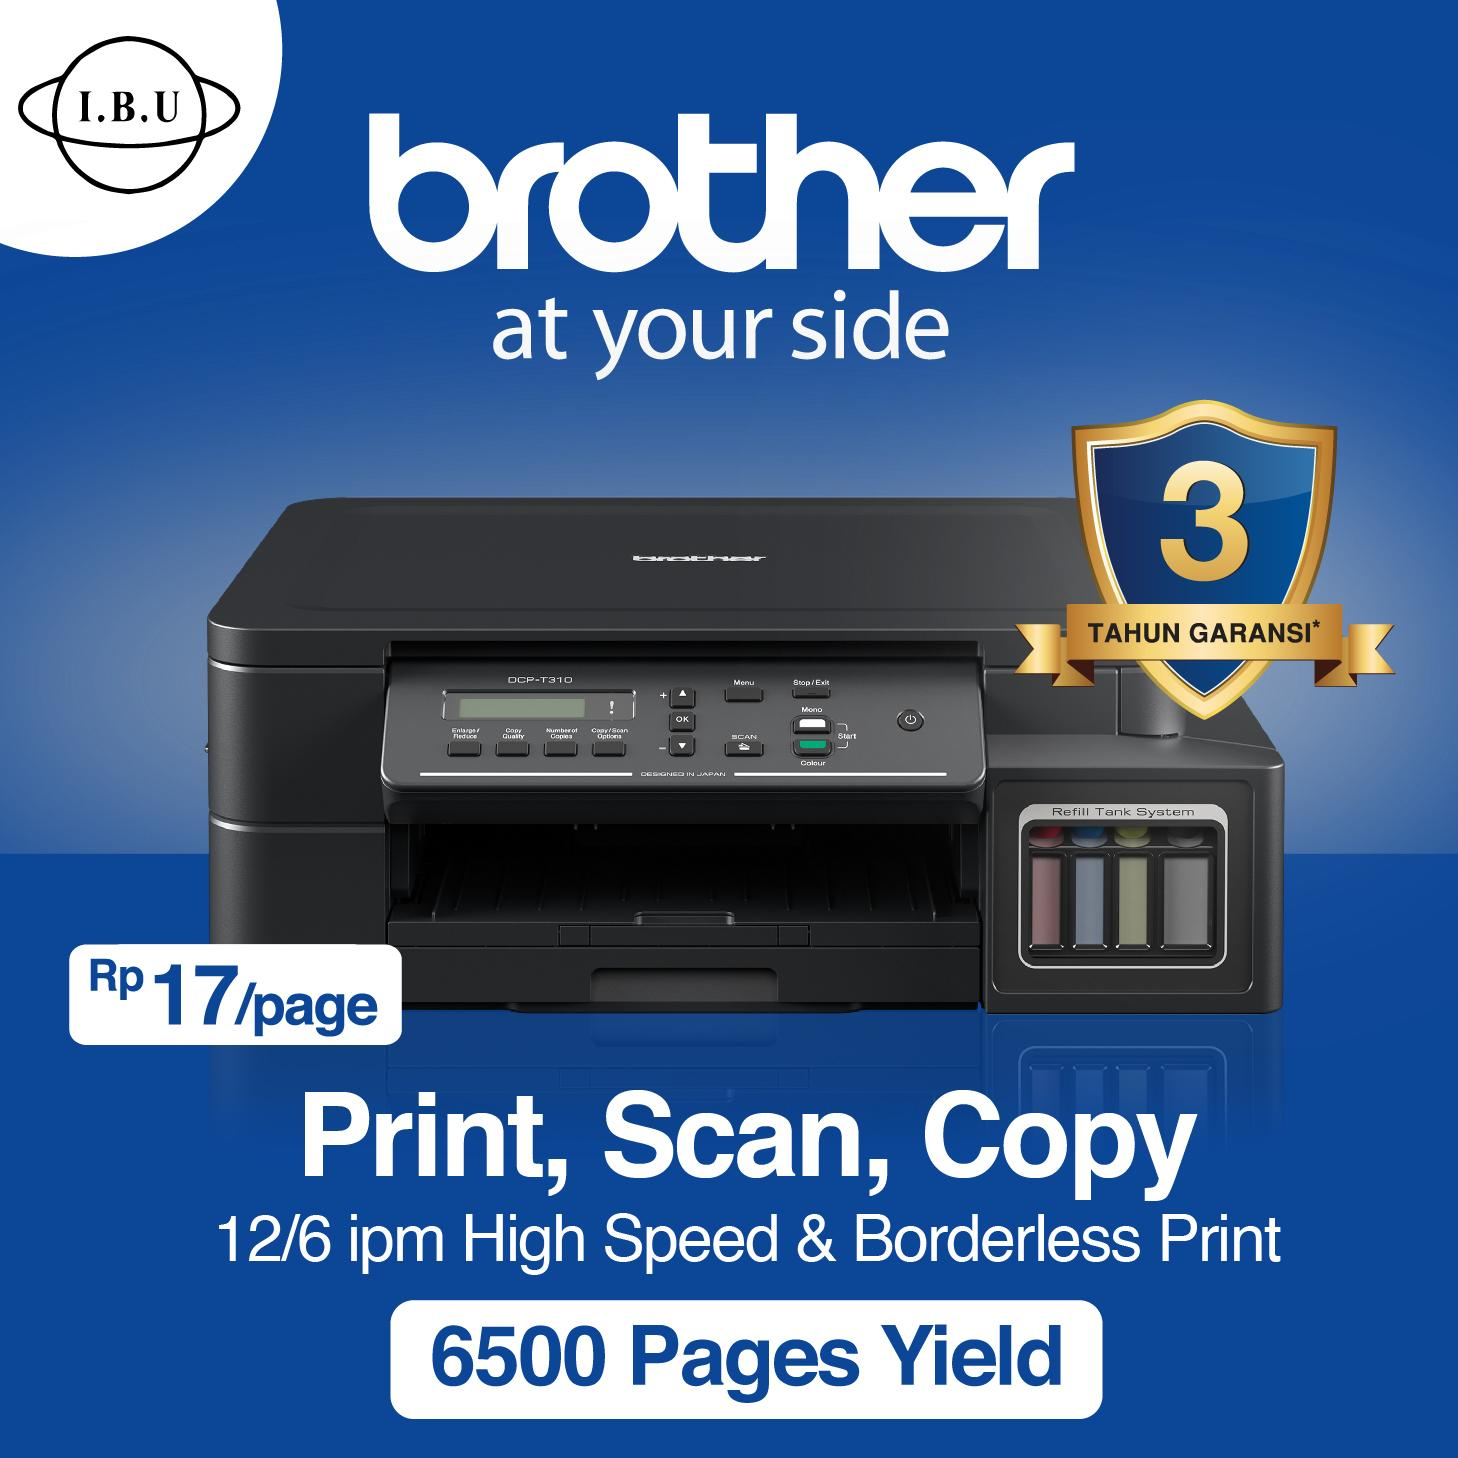 BROTHER PRINTER MULTIFUNCTION DCP T310 INK TANK COLOR